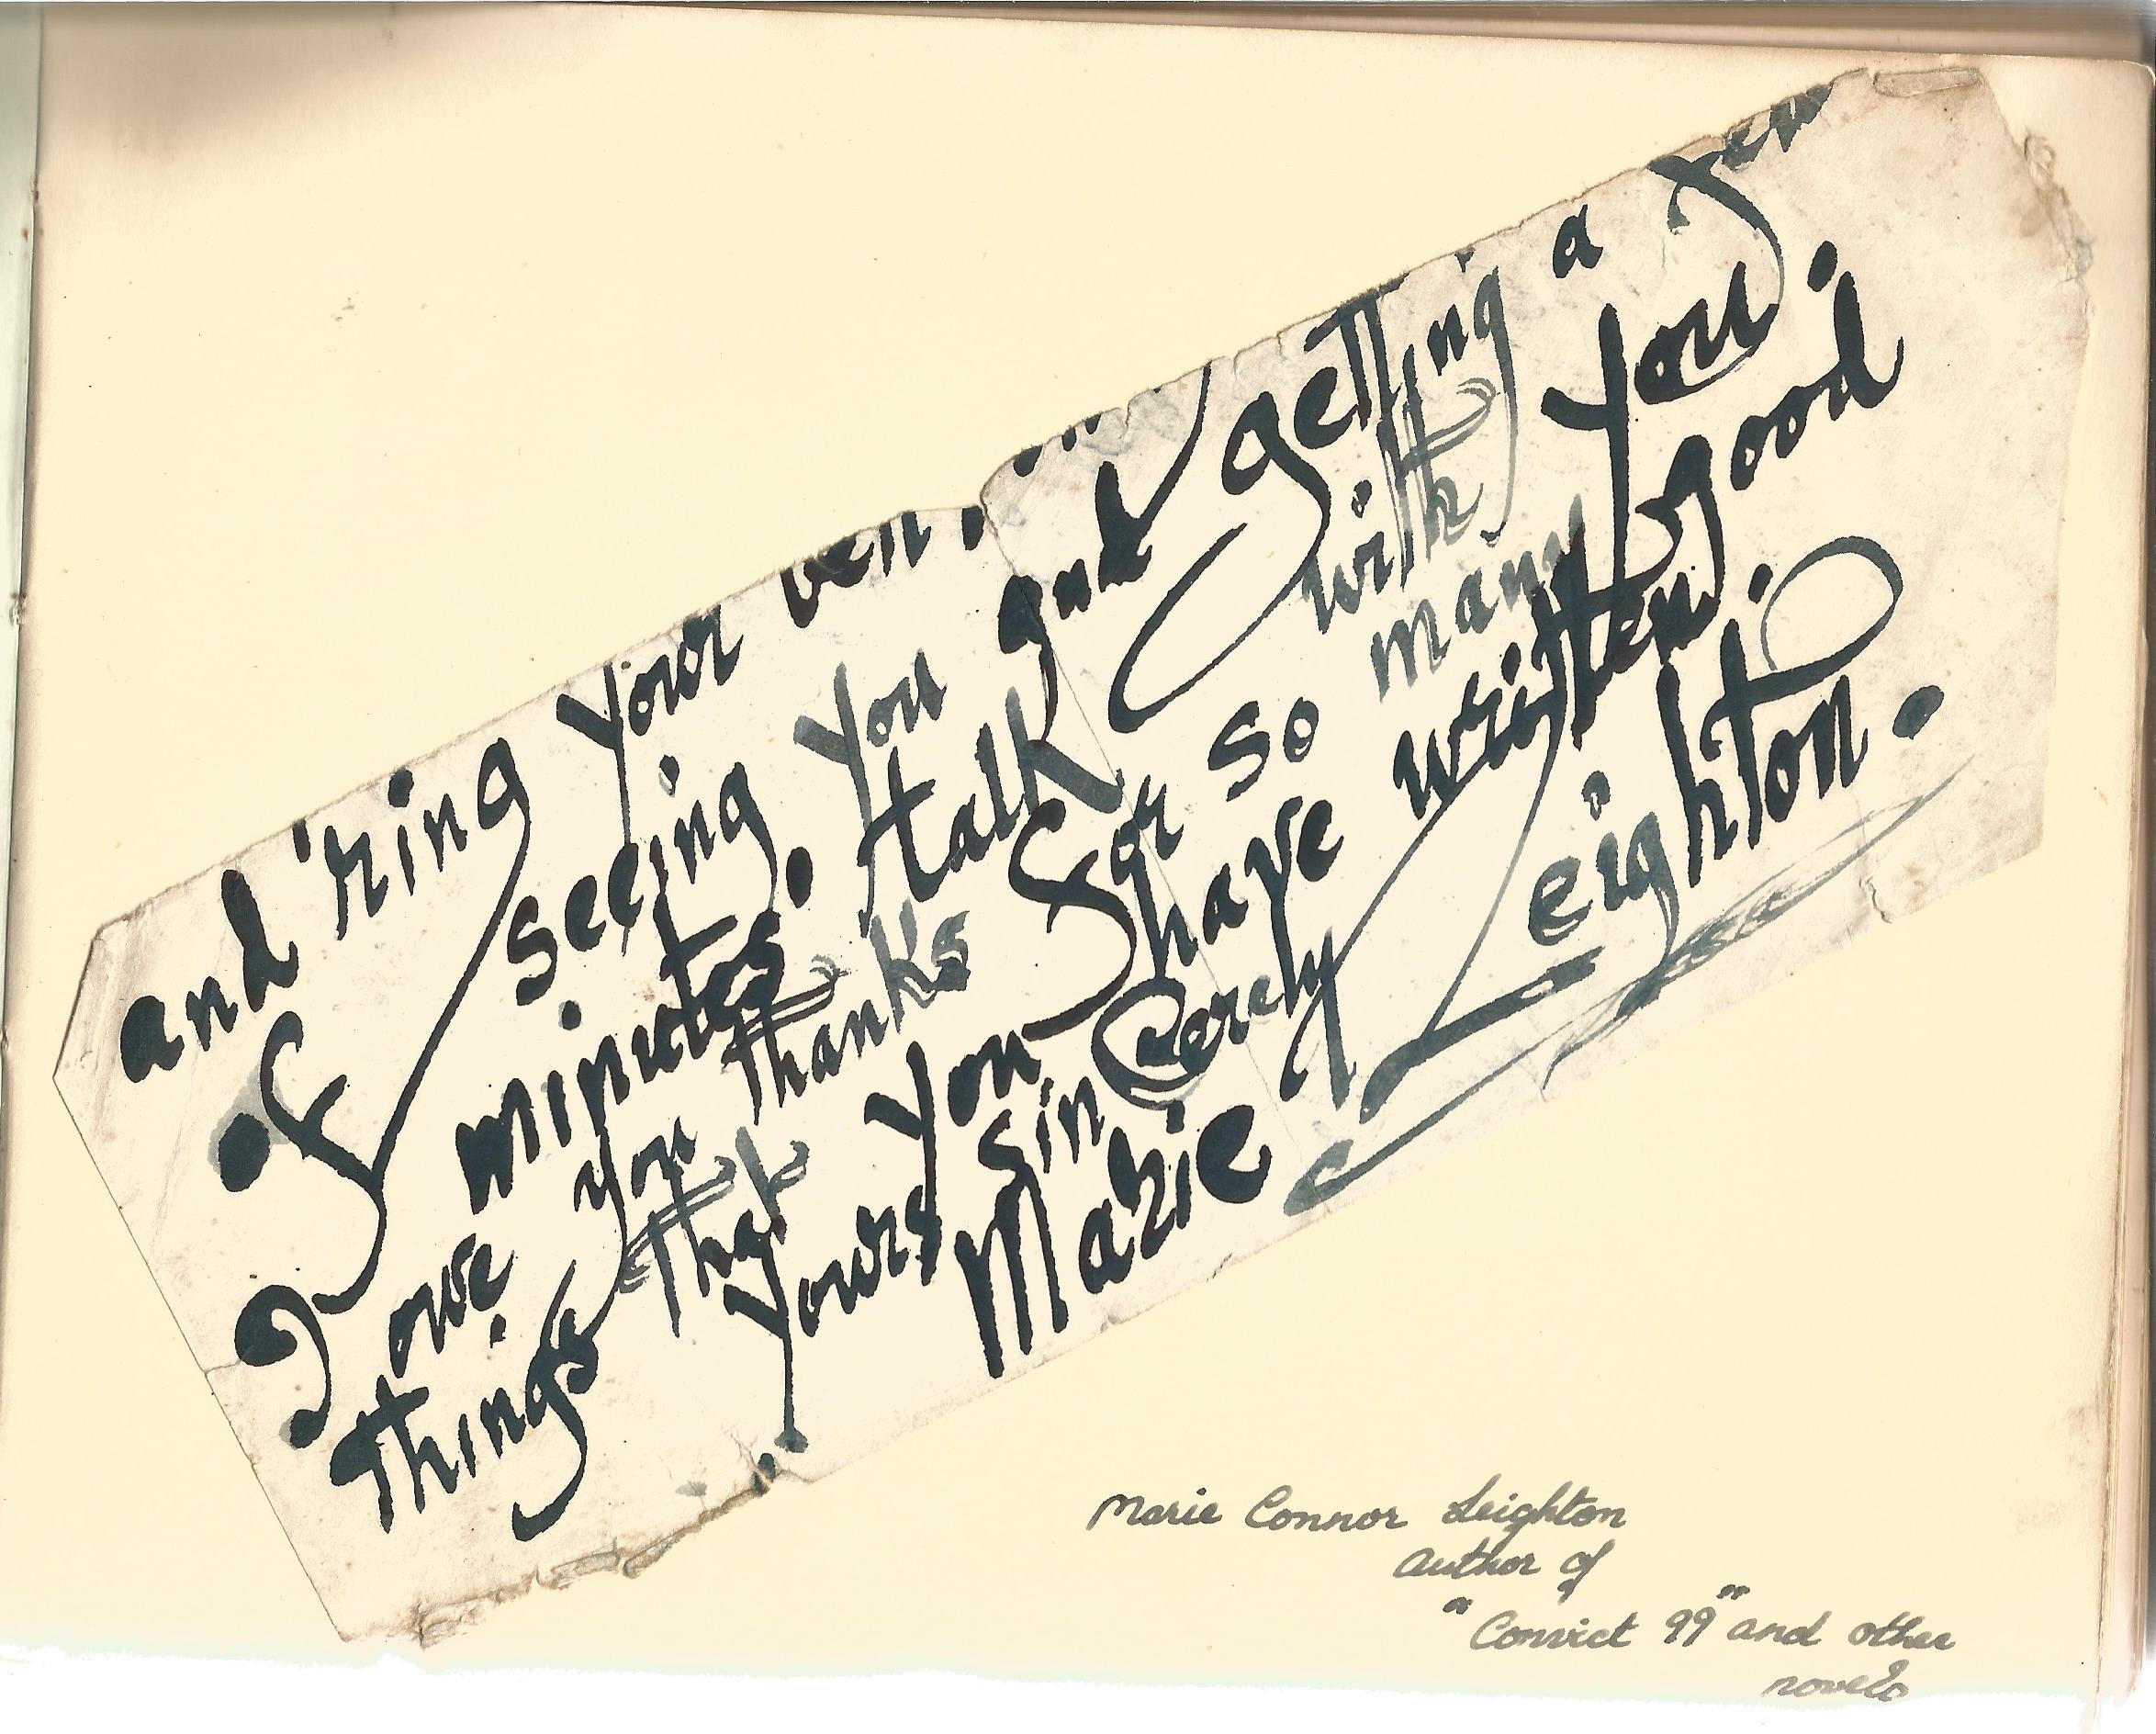 Literary autograph book collection includes some well-known names such as Sir Richard Terry, JB - Image 2 of 9